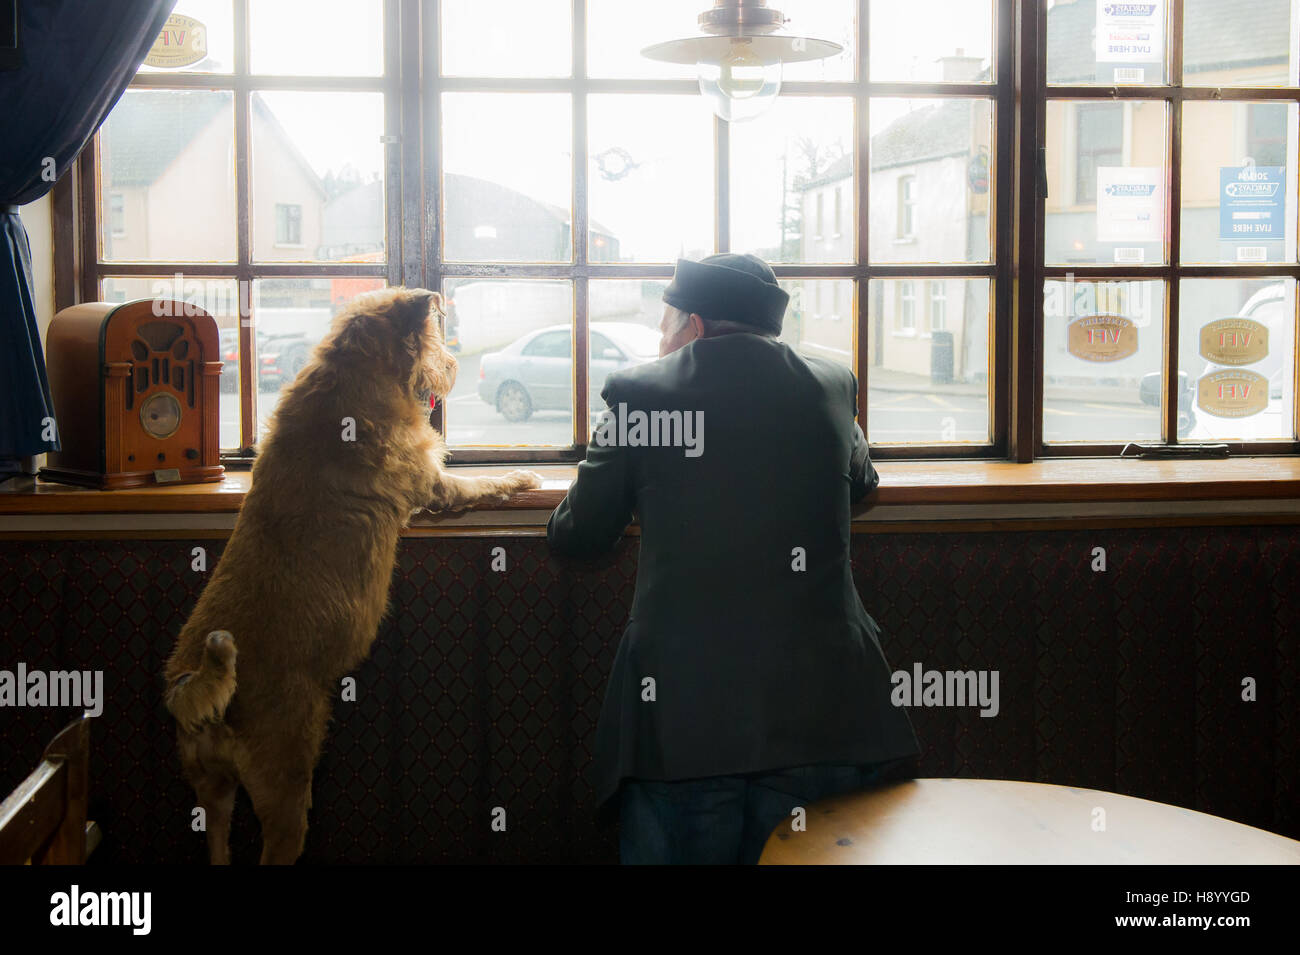 old-man-and-his-dog-looking-out-of-the-window-of-a-pub-in-coachford-H8YYGD.jpg